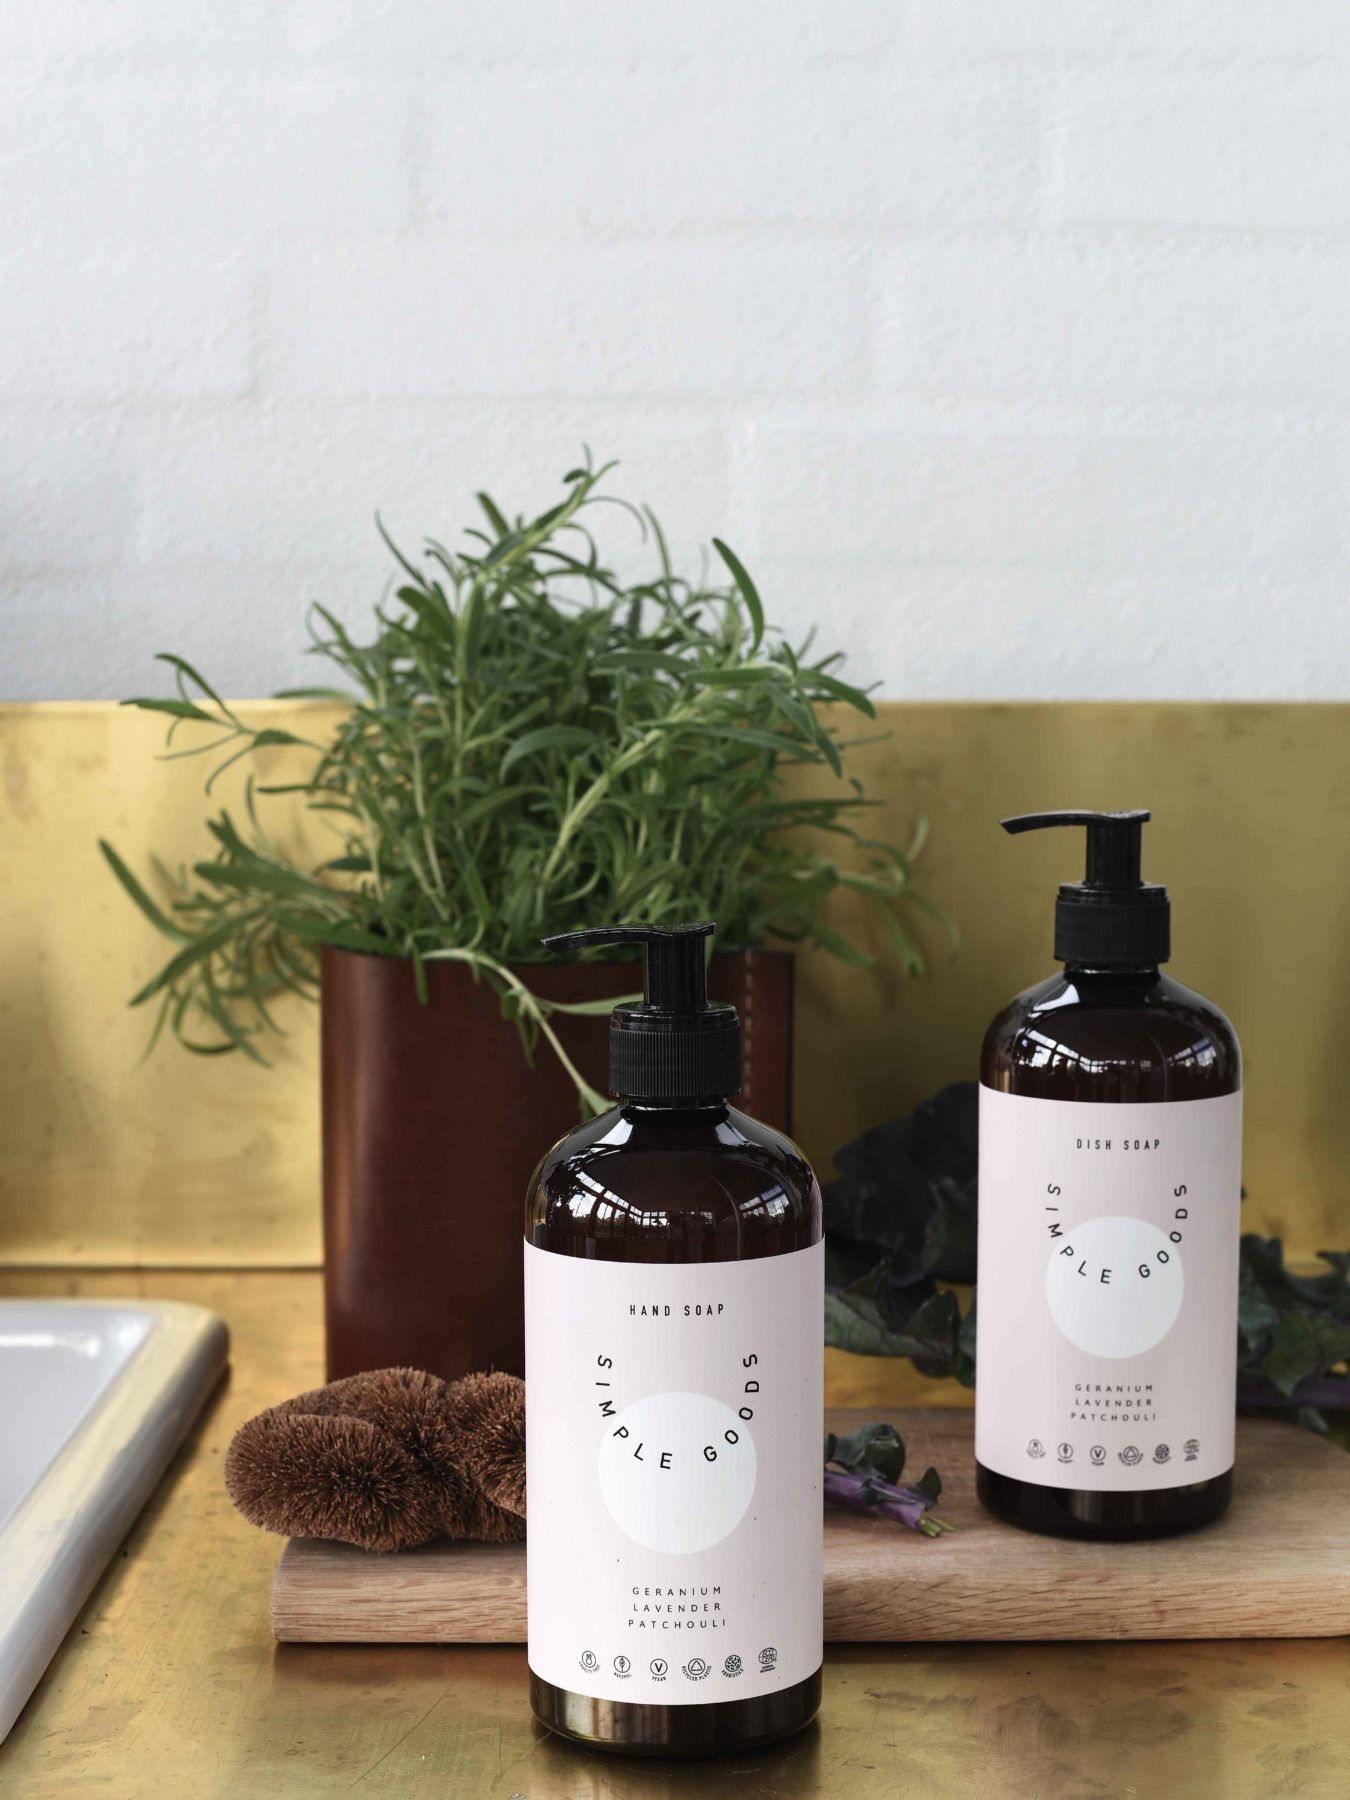 Simple Goods - Hand soap 450ml, Geranium